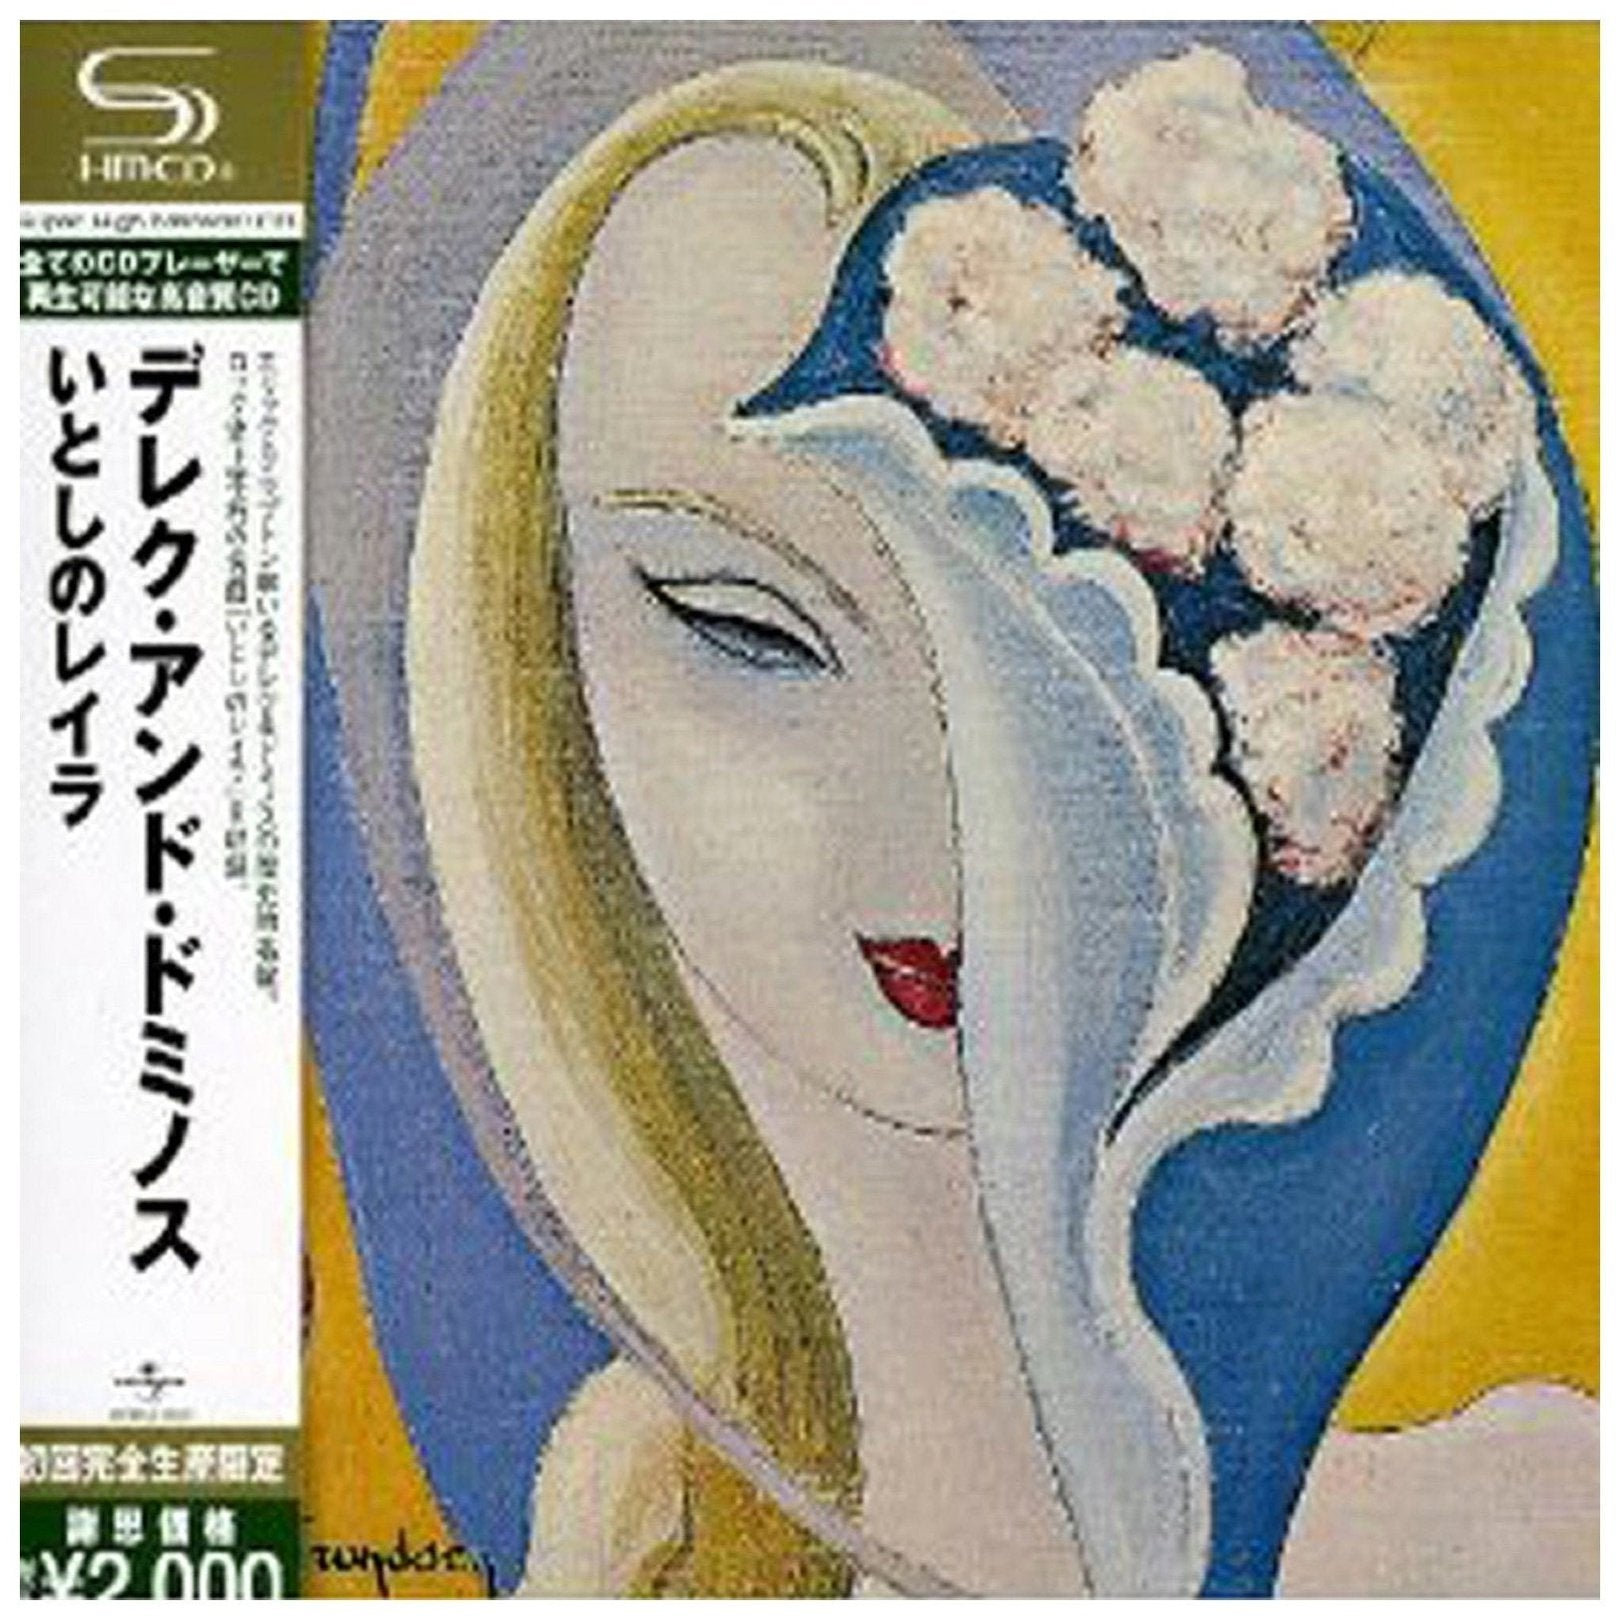 Derek & The Dominos - Derek And The Dominos - Layla - Japan Jewel Case Shm - Uicy-91397 - Cd